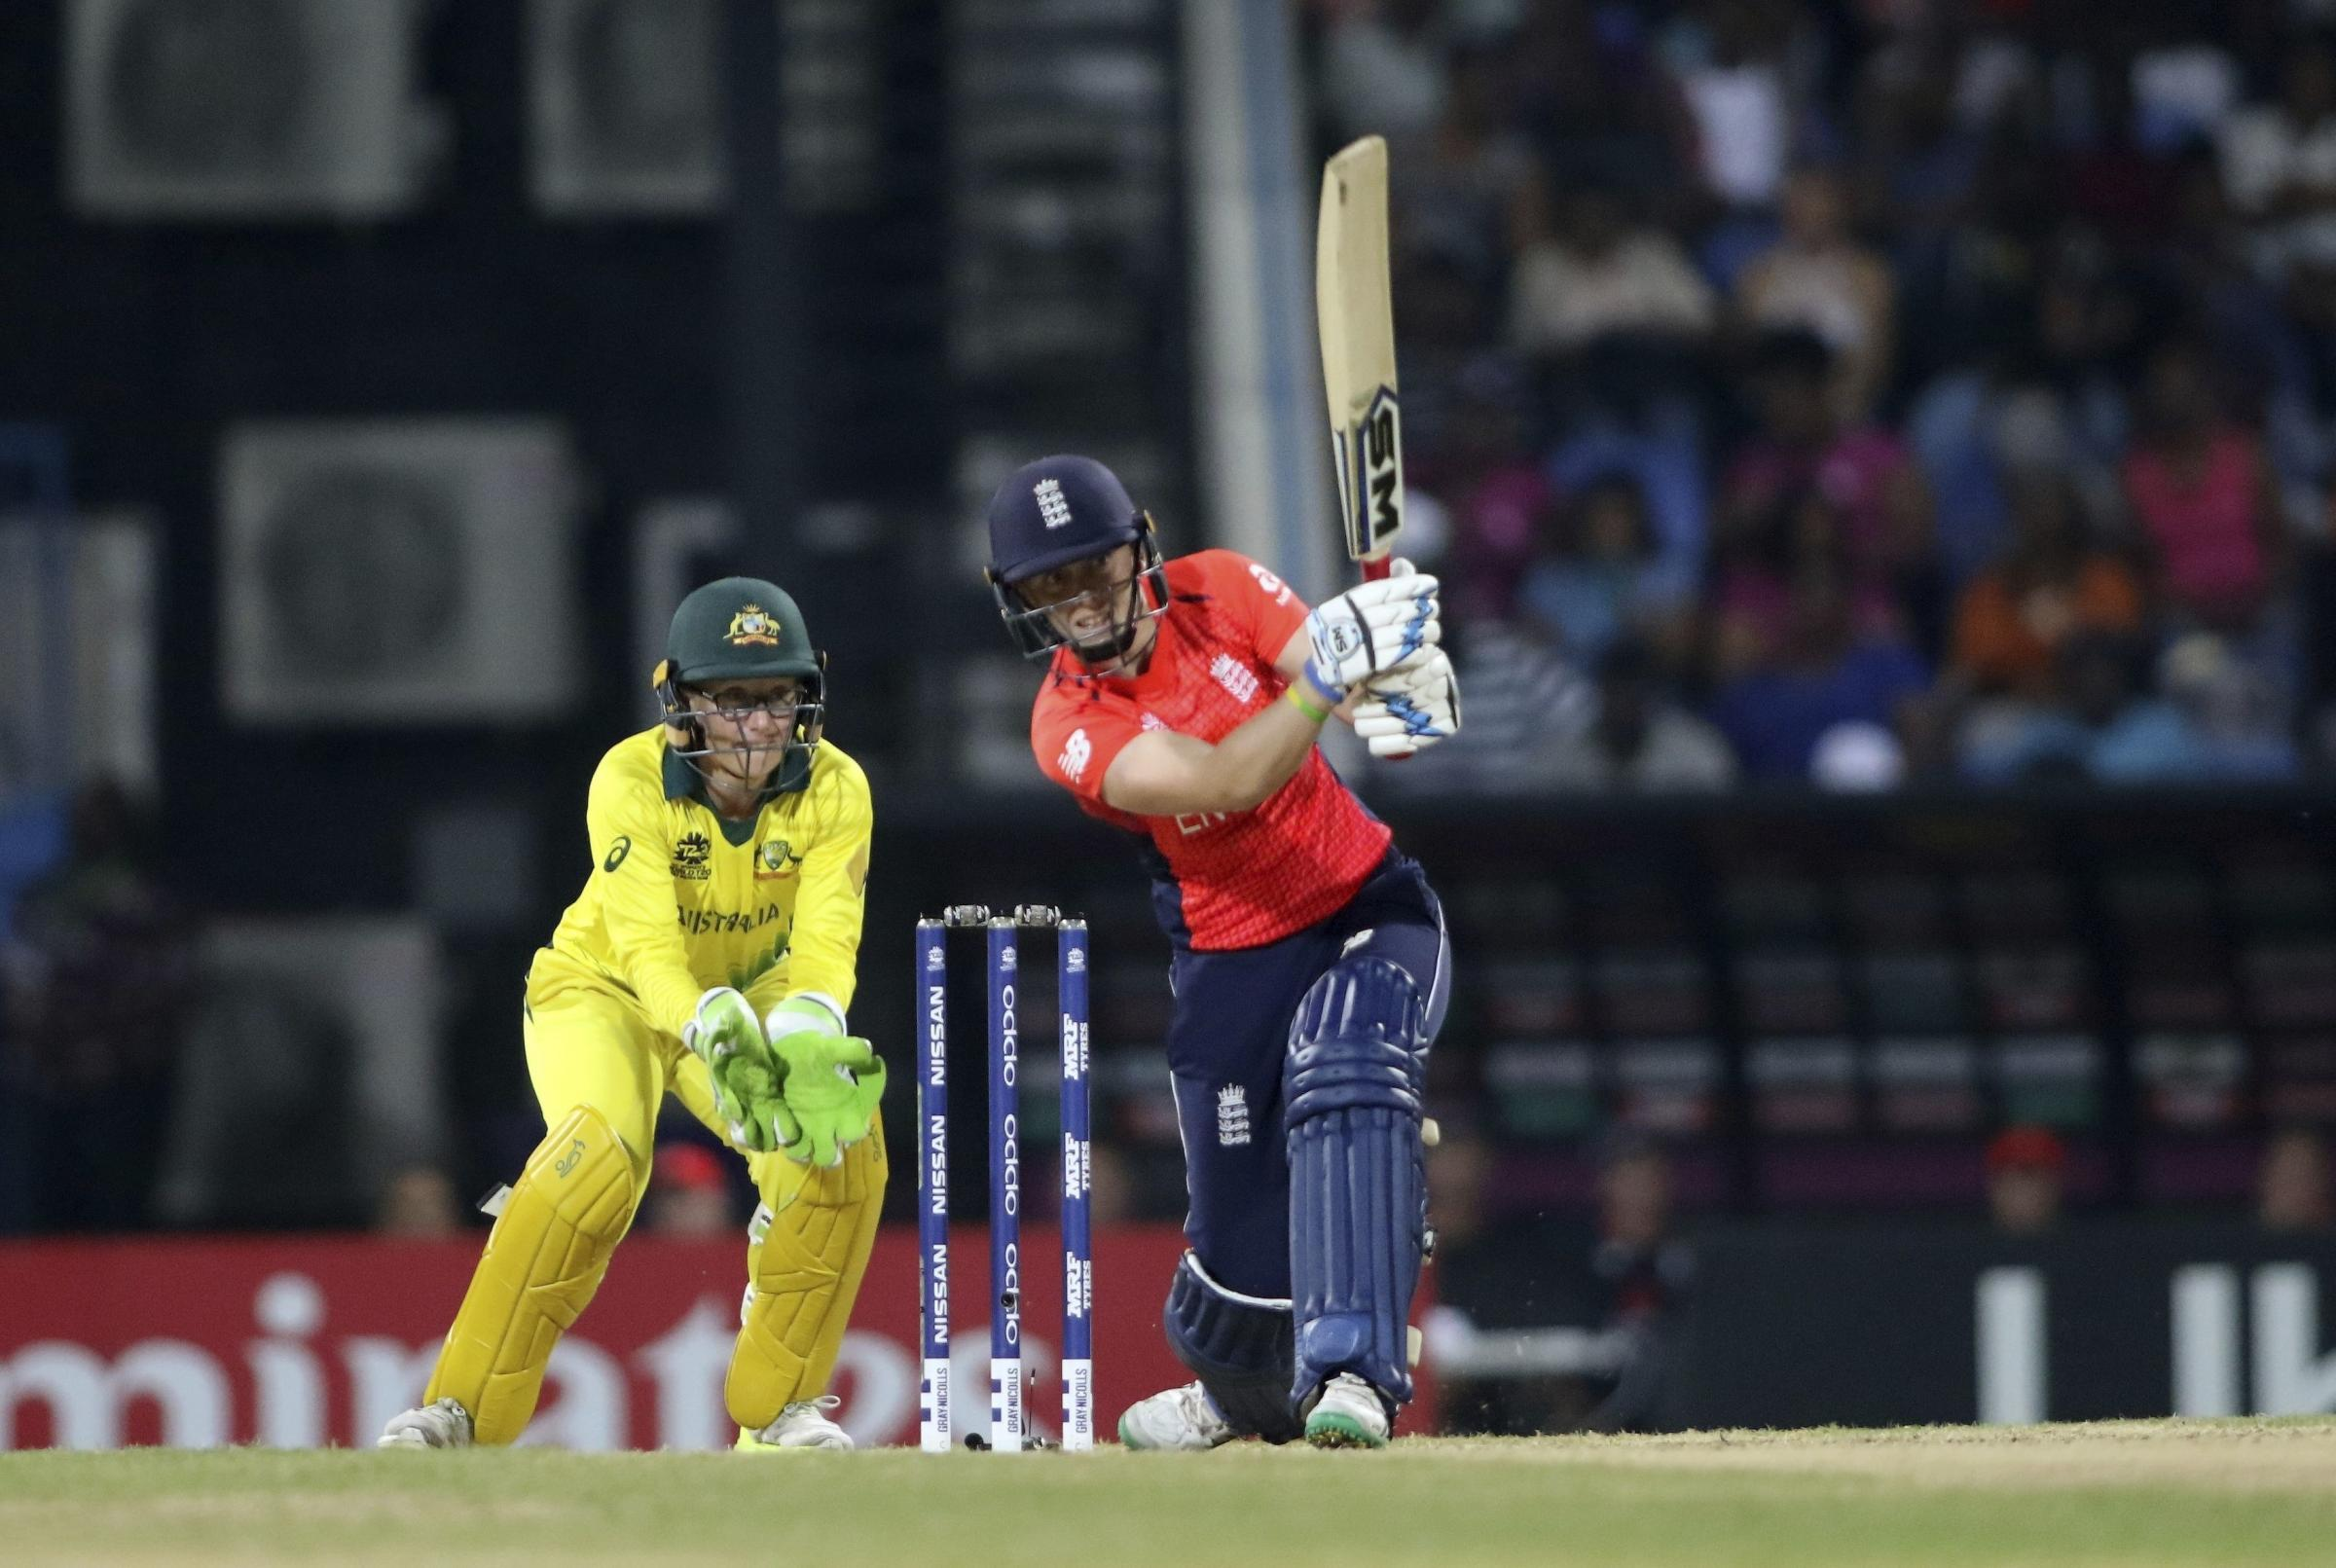 DEFEATED: England captain Heather Knight made 25 in a losing cause against Australia. Pic: PA